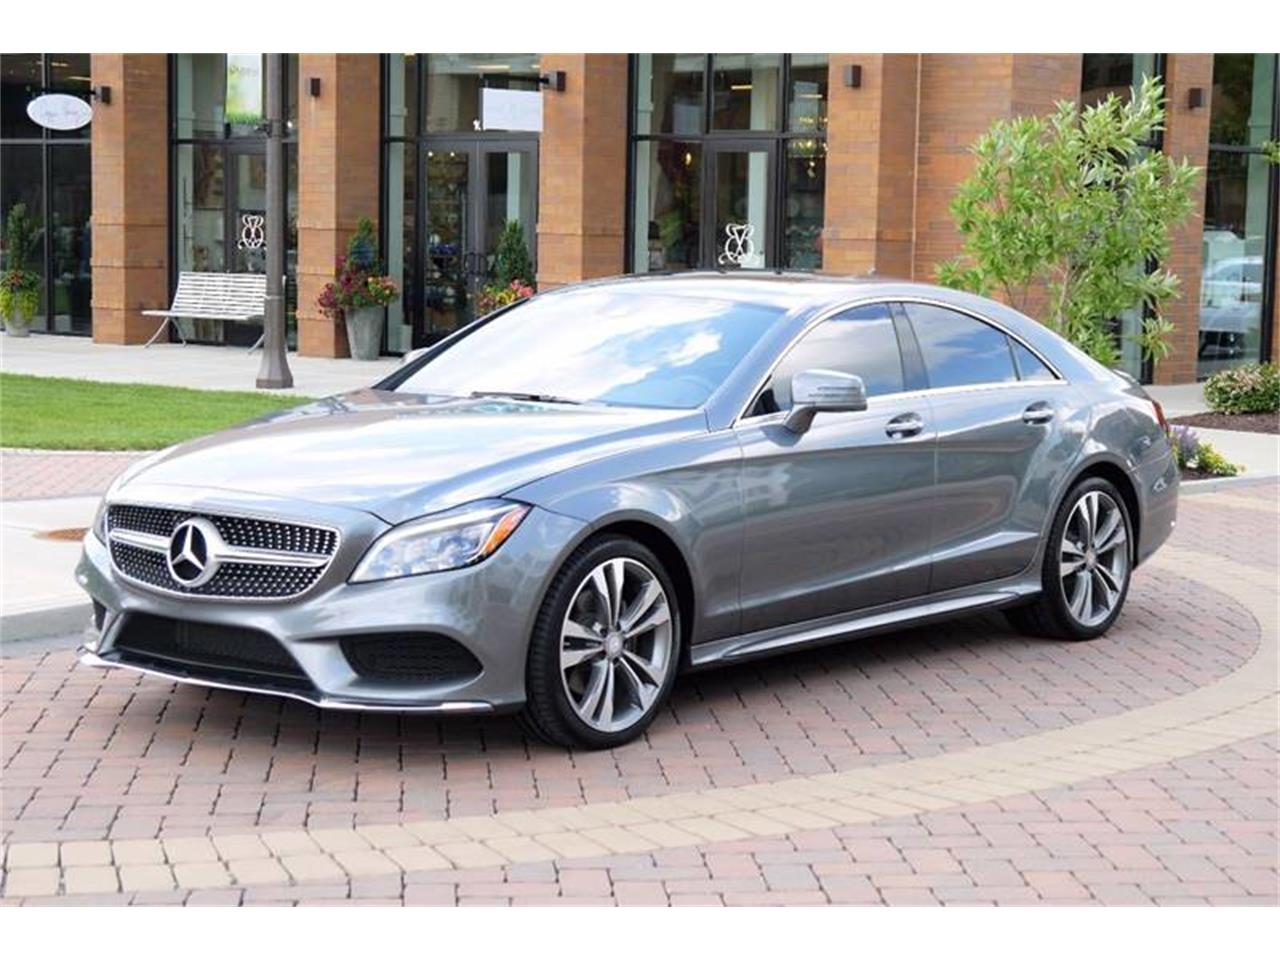 Large Picture of '16 Mercedes-Benz CLS-Class located in Brentwood Tennessee - $57,800.00 Offered by Arde Motorcars - LEUE